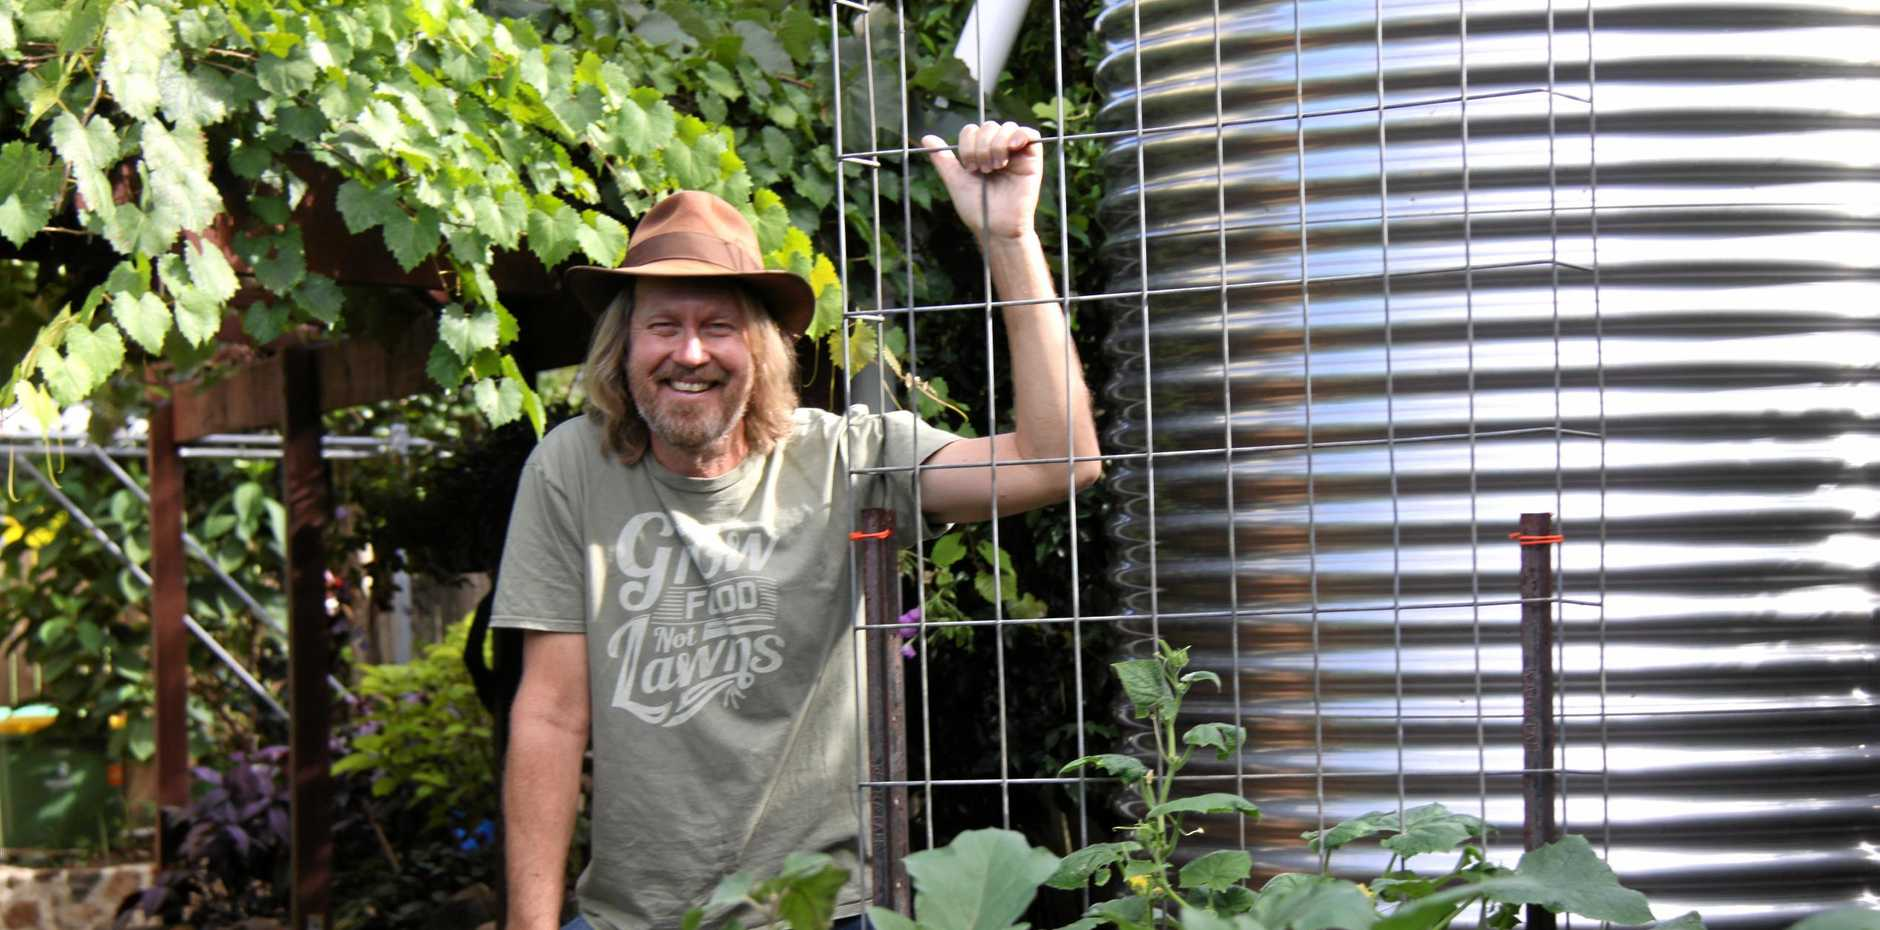 ORGANIC WORKSHOPS: Gardening Australia presenter and writer Phil Dudman is hosting a series of organic workshops at his own Lismore patch to show people how to grow their own delicious fruit and vegetables.